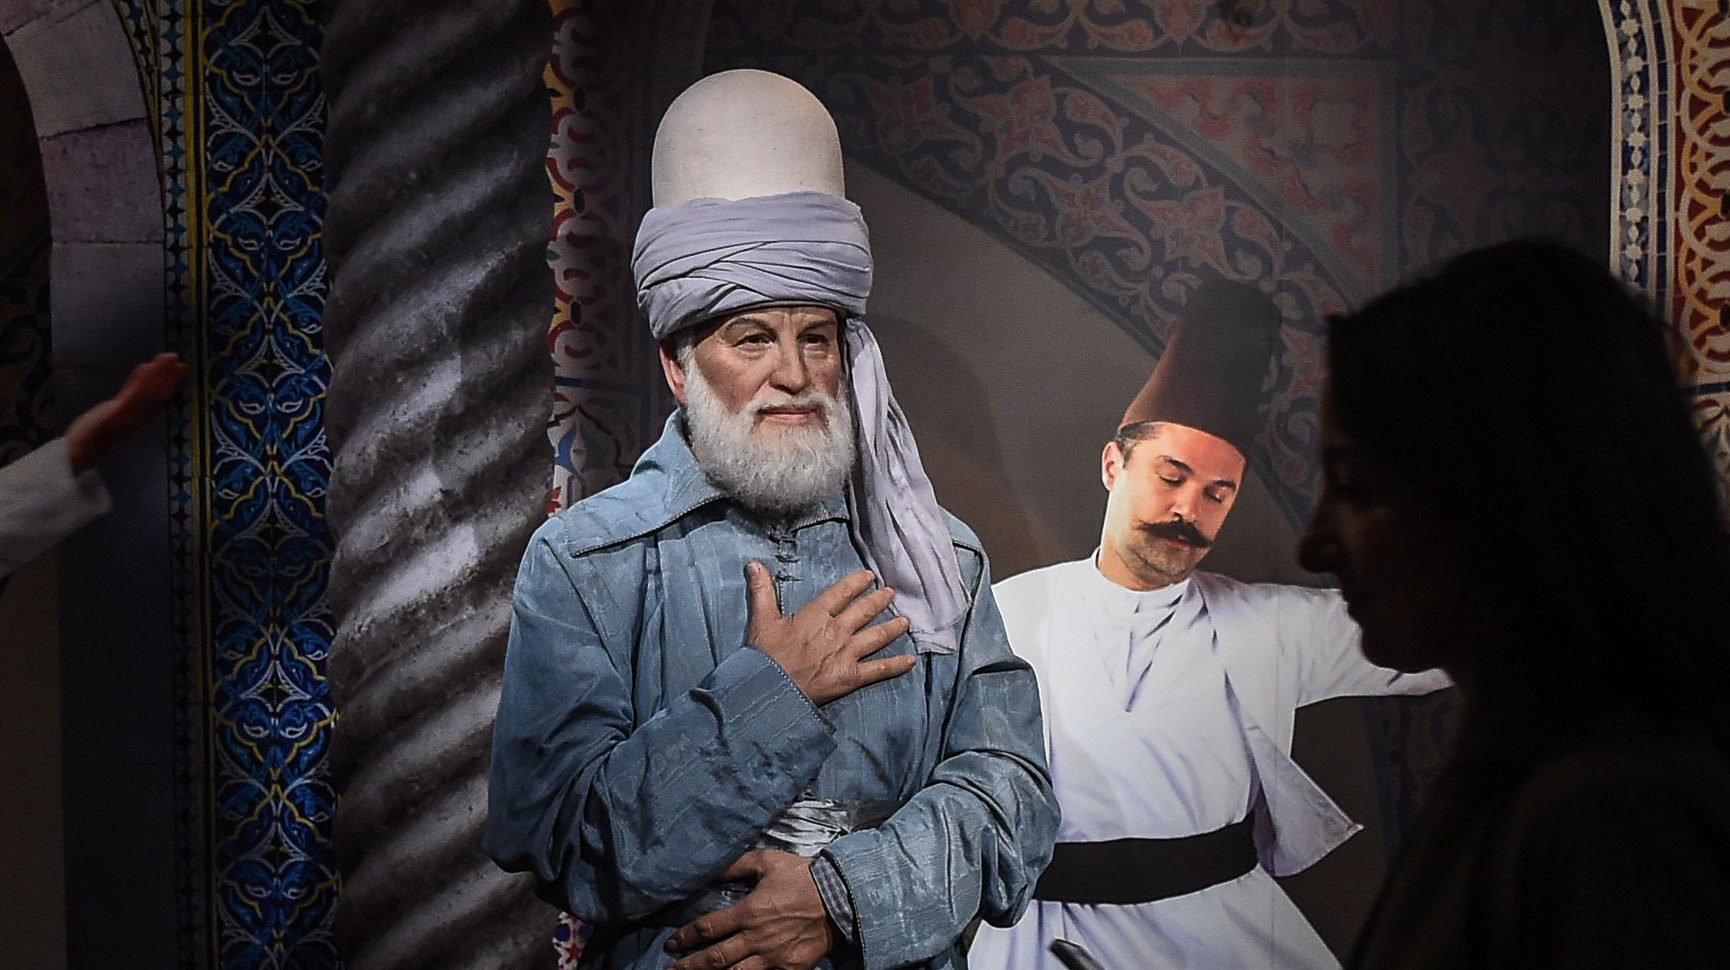 A wax figure of the poet Rumi